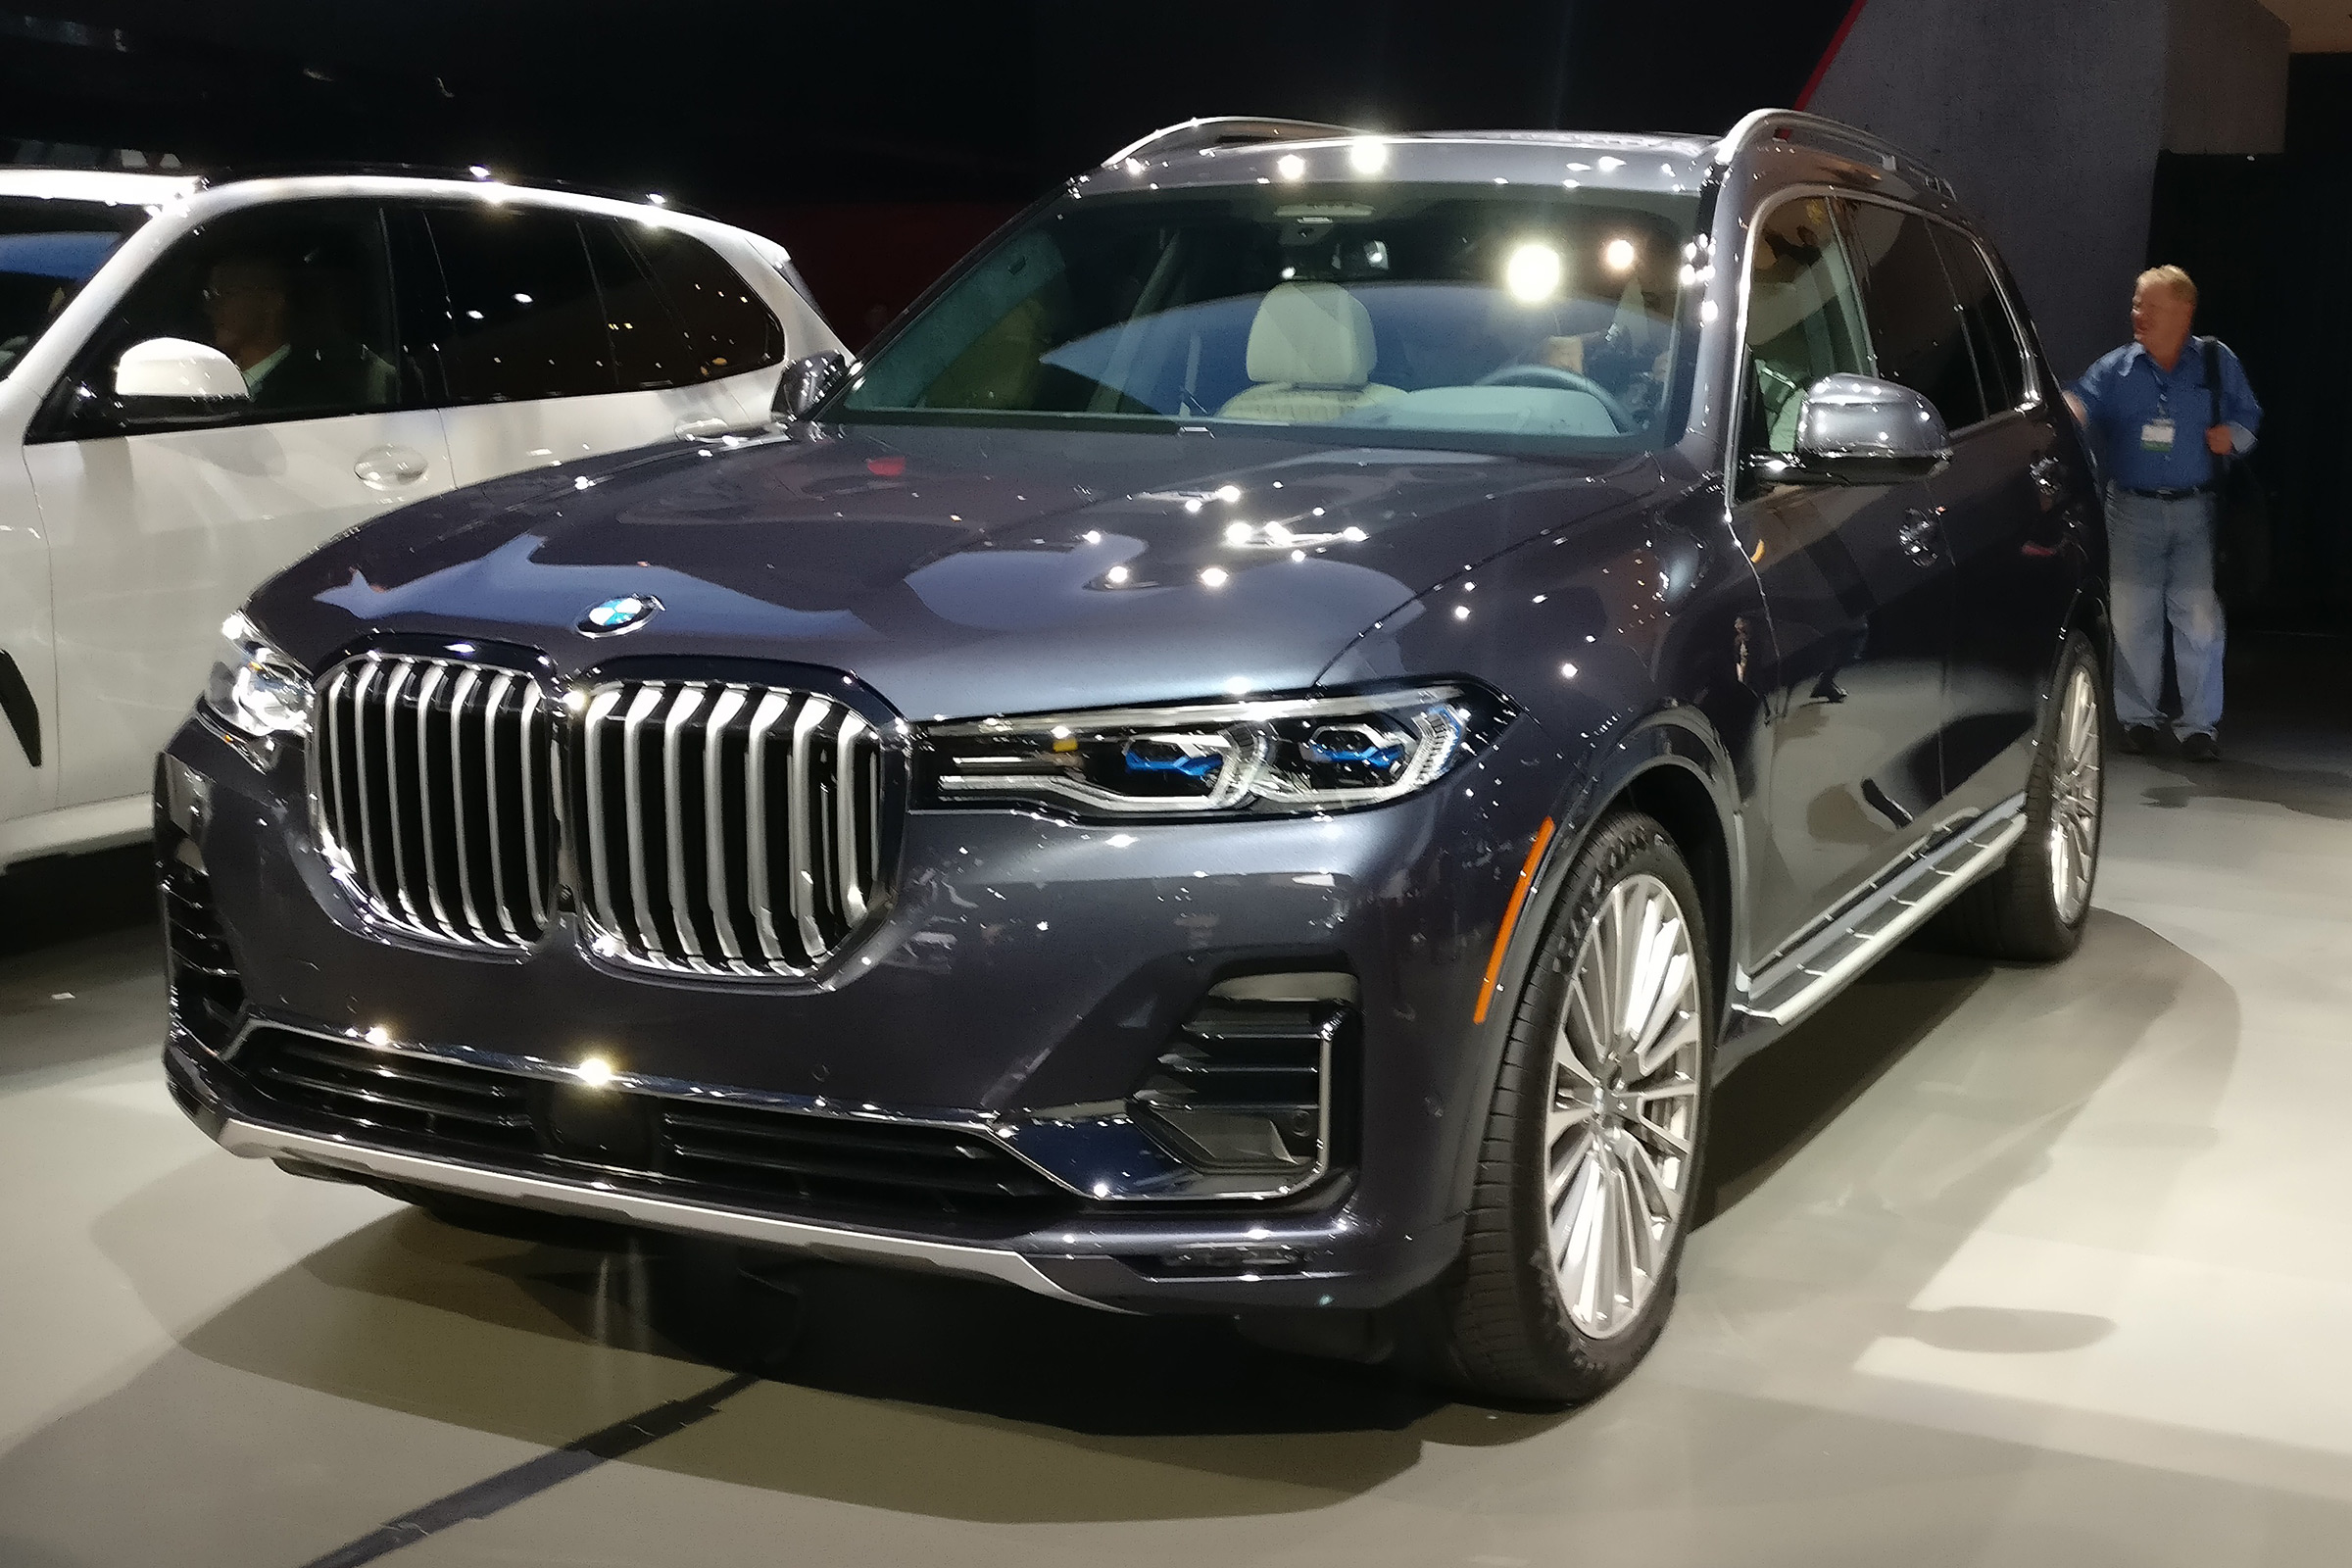 38 The Best 2020 BMW X7 Suv Reviews